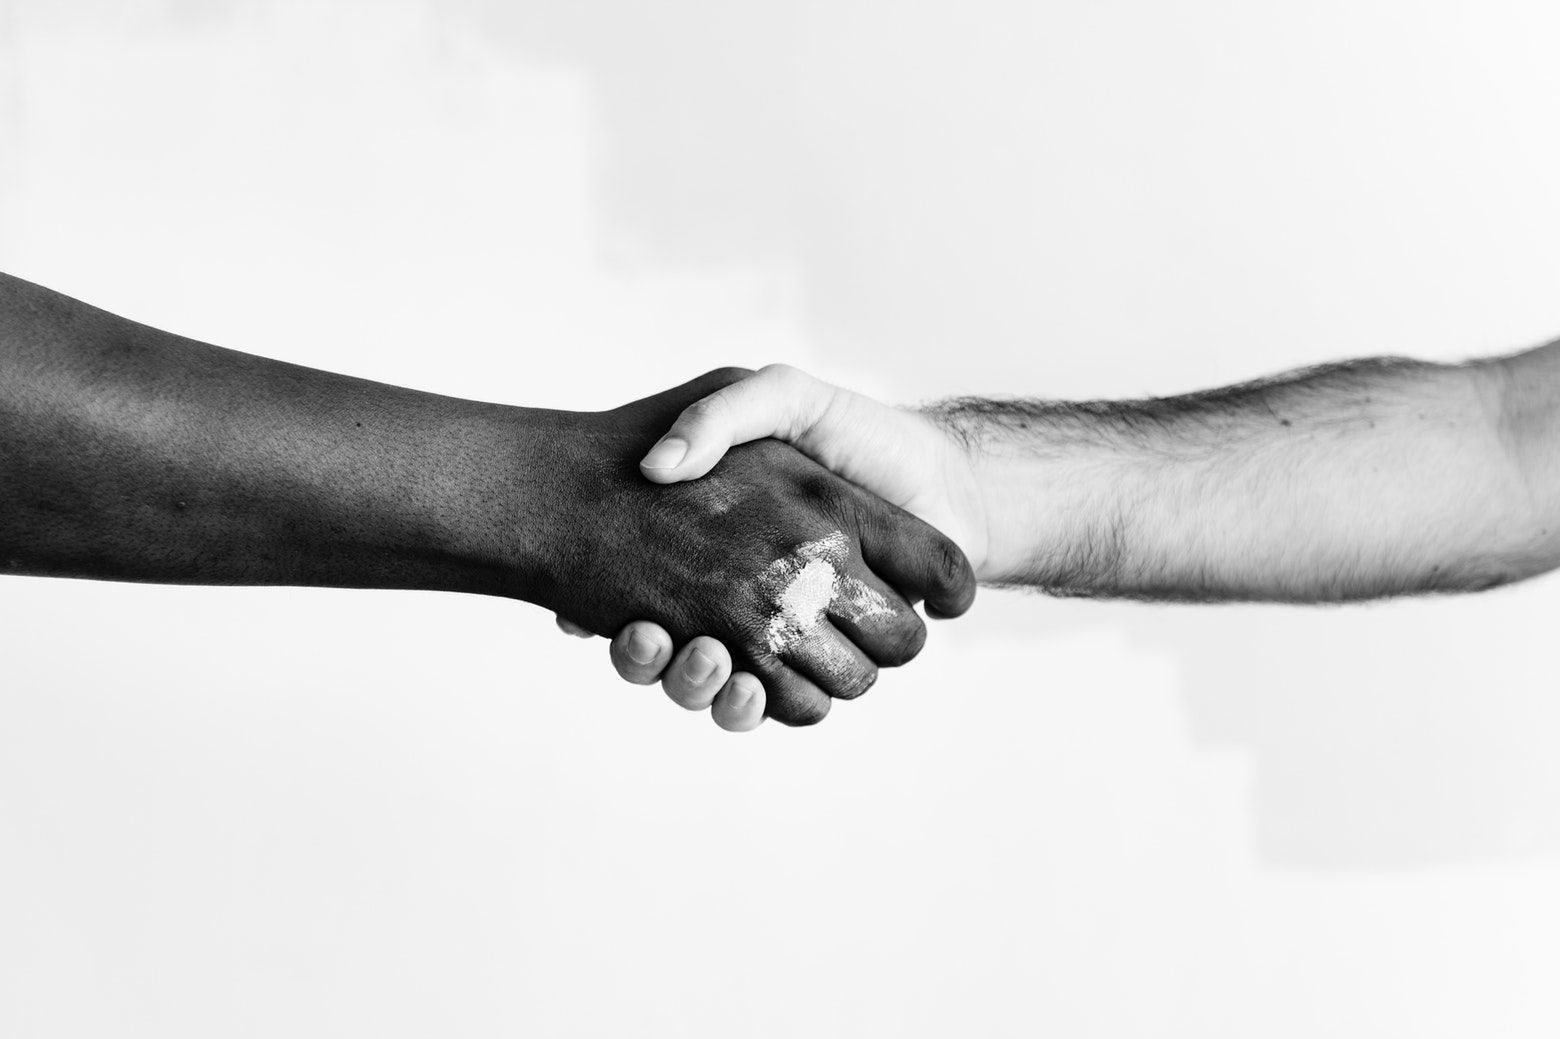 Human beings shaking hands